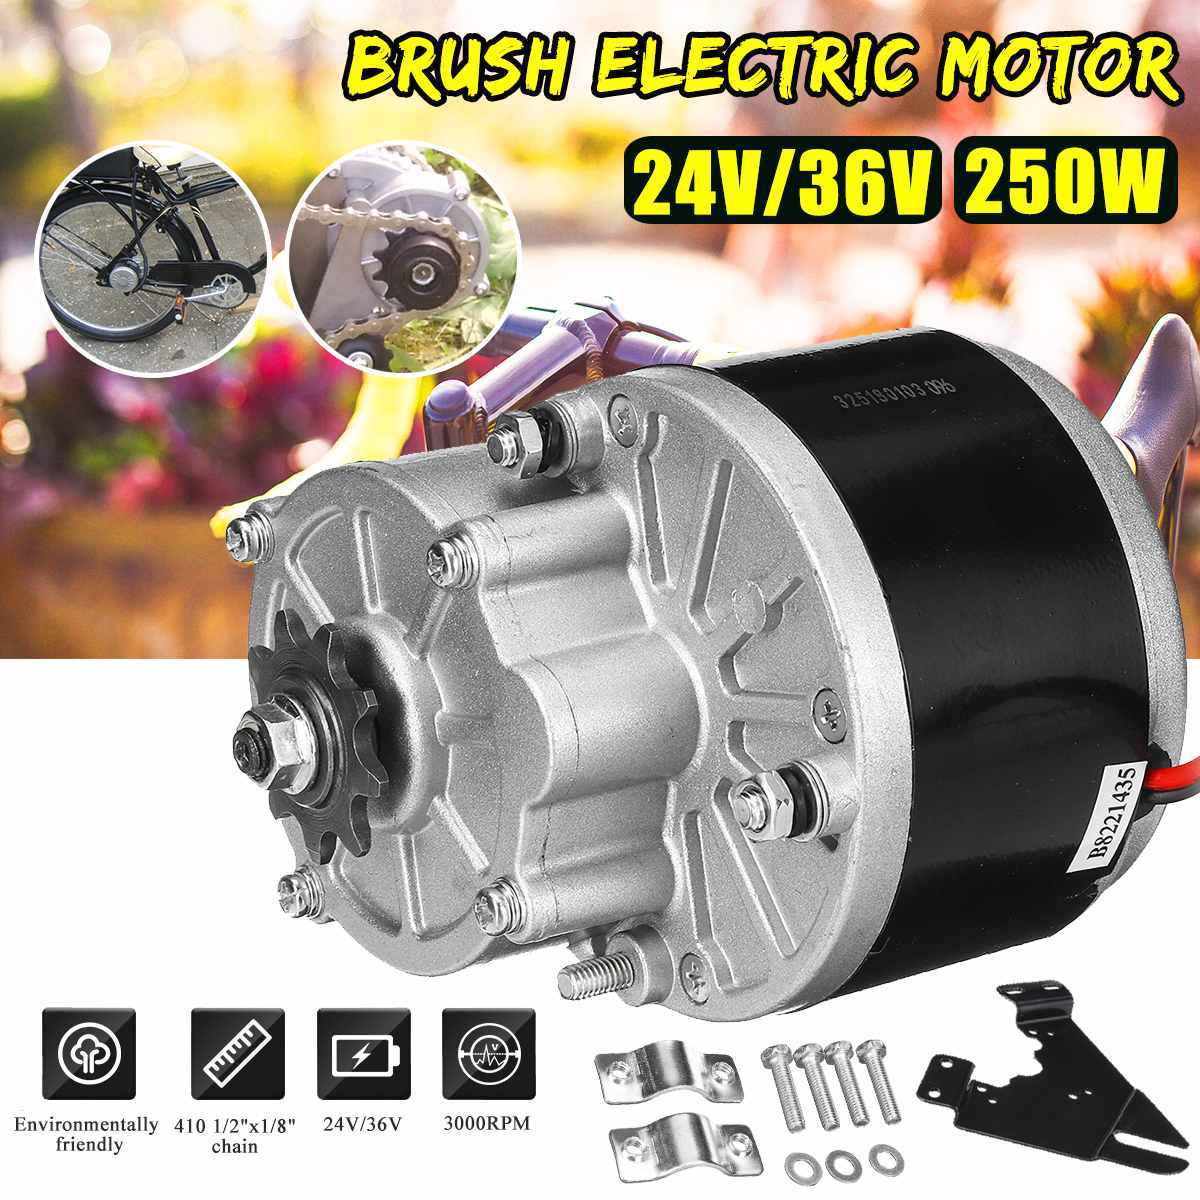 250W 24V/36V Electric Bicycle Motor For 410 1/2x1/8 Chain Electric Bicycle/Bike E bike Scooter Conversion Kit Set Accessories250W 24V/36V Electric Bicycle Motor For 410 1/2x1/8 Chain Electric Bicycle/Bike E bike Scooter Conversion Kit Set Accessories